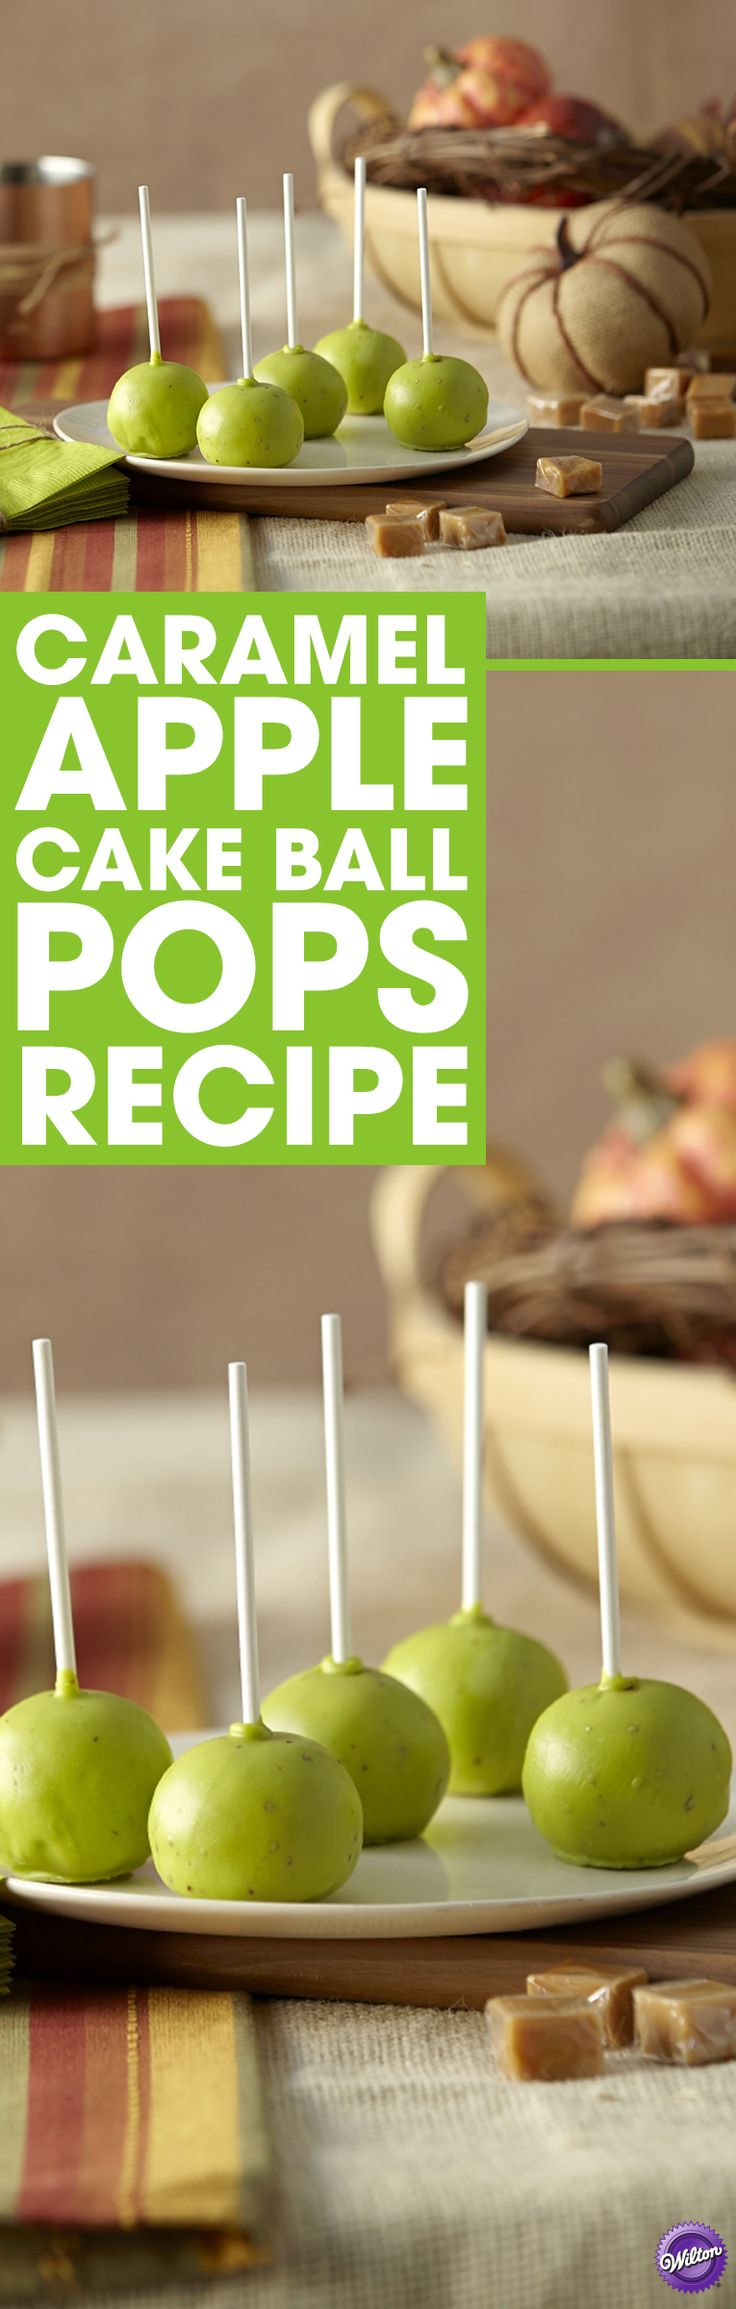 How to Make Caramel Apple Cake Pops - Make yummy caramel apple cake pops by dipping cake pops in melted limited edition caramel apple Candy Melts candy. Make a batch for a pumpkin carving party, a get-together with friends or even Thanksgiving!